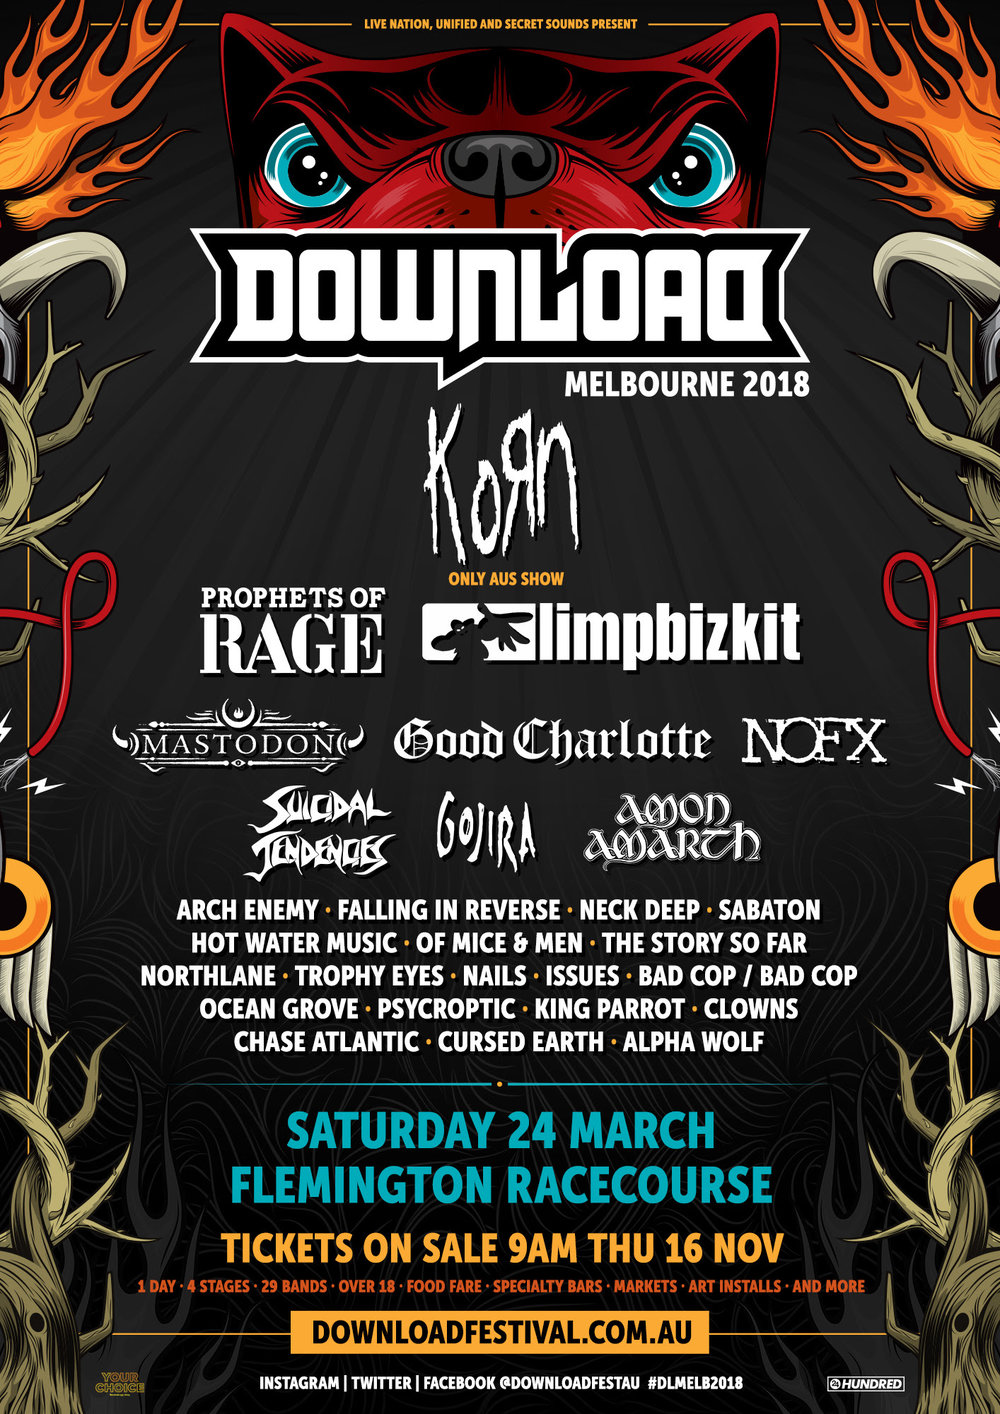 Download Festival 2018.jpg